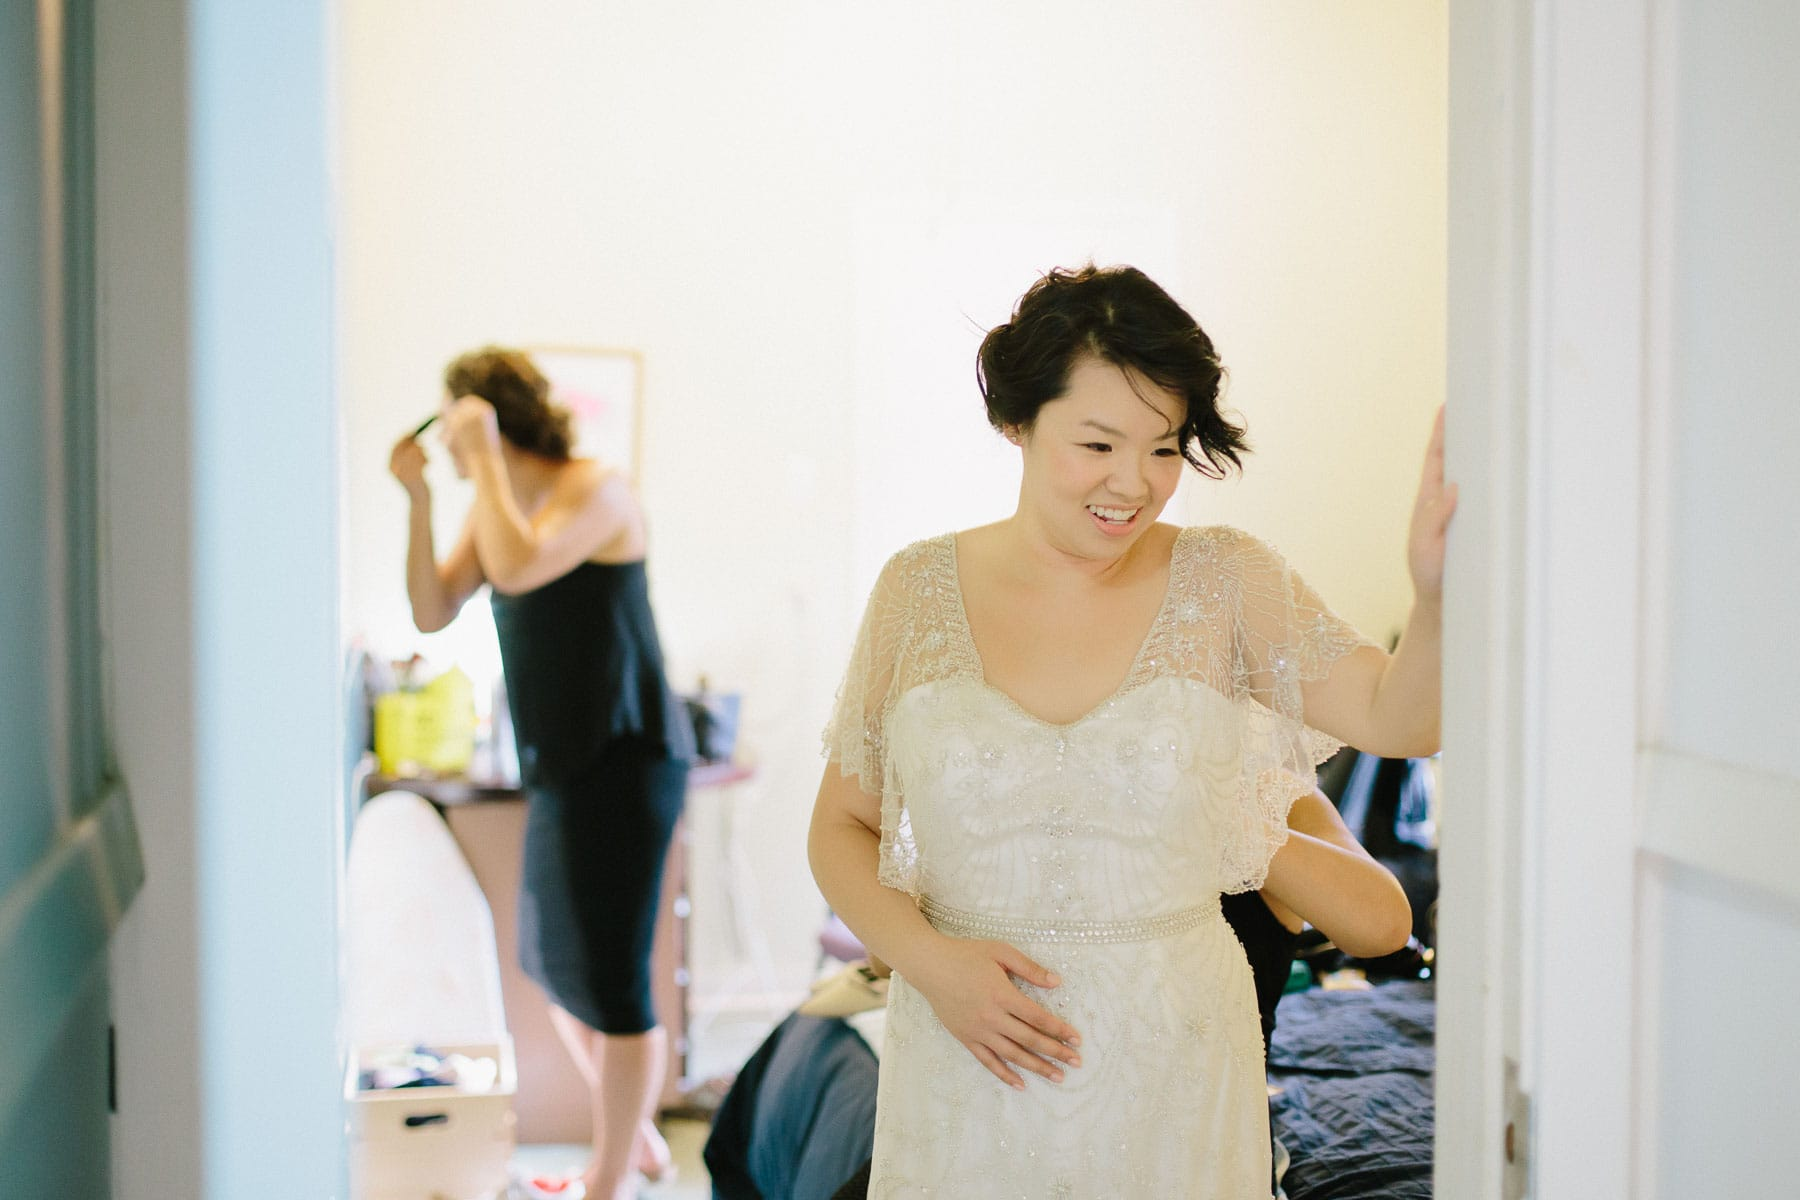 Bride puts on dress in room, Artscape, Toronto Island wedding